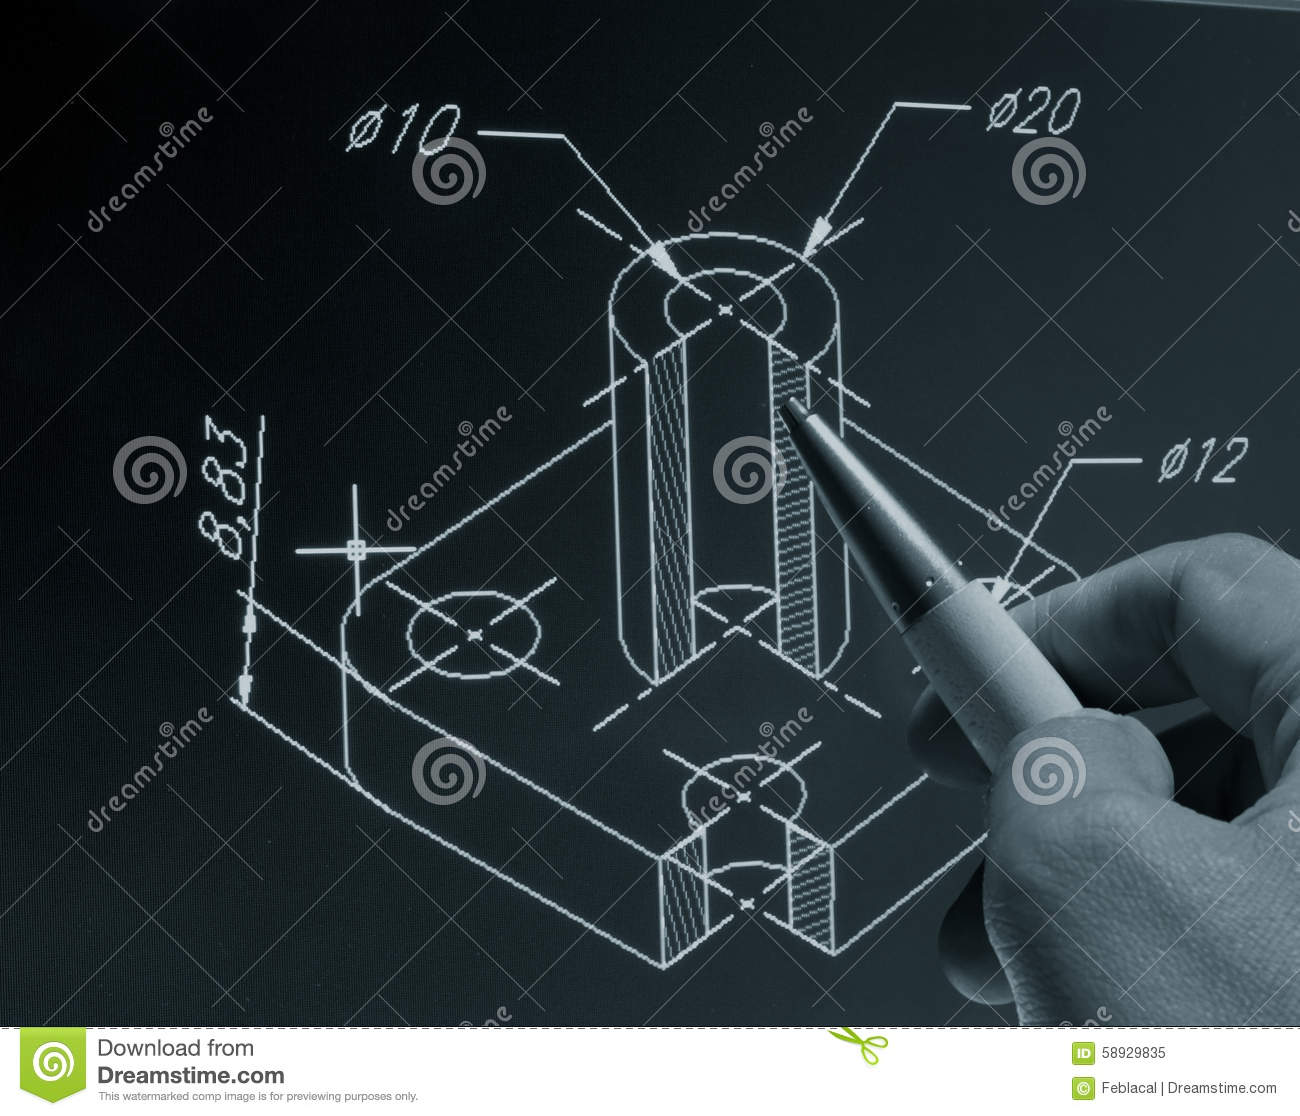 Cad blueprint stock image image of drawing product 58929835 cad blueprint malvernweather Image collections